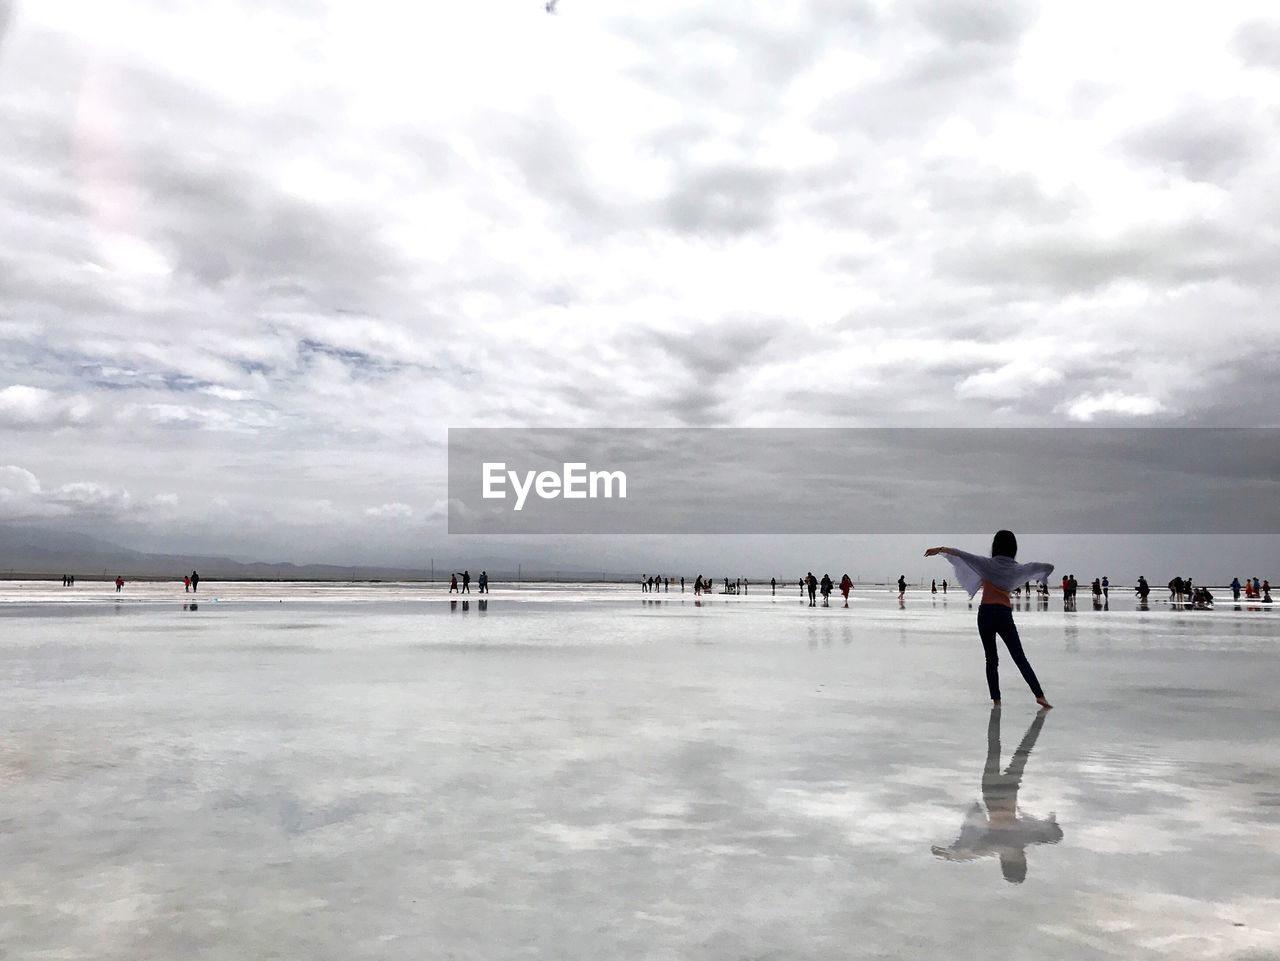 MEN PLAYING ON WATER AGAINST SKY